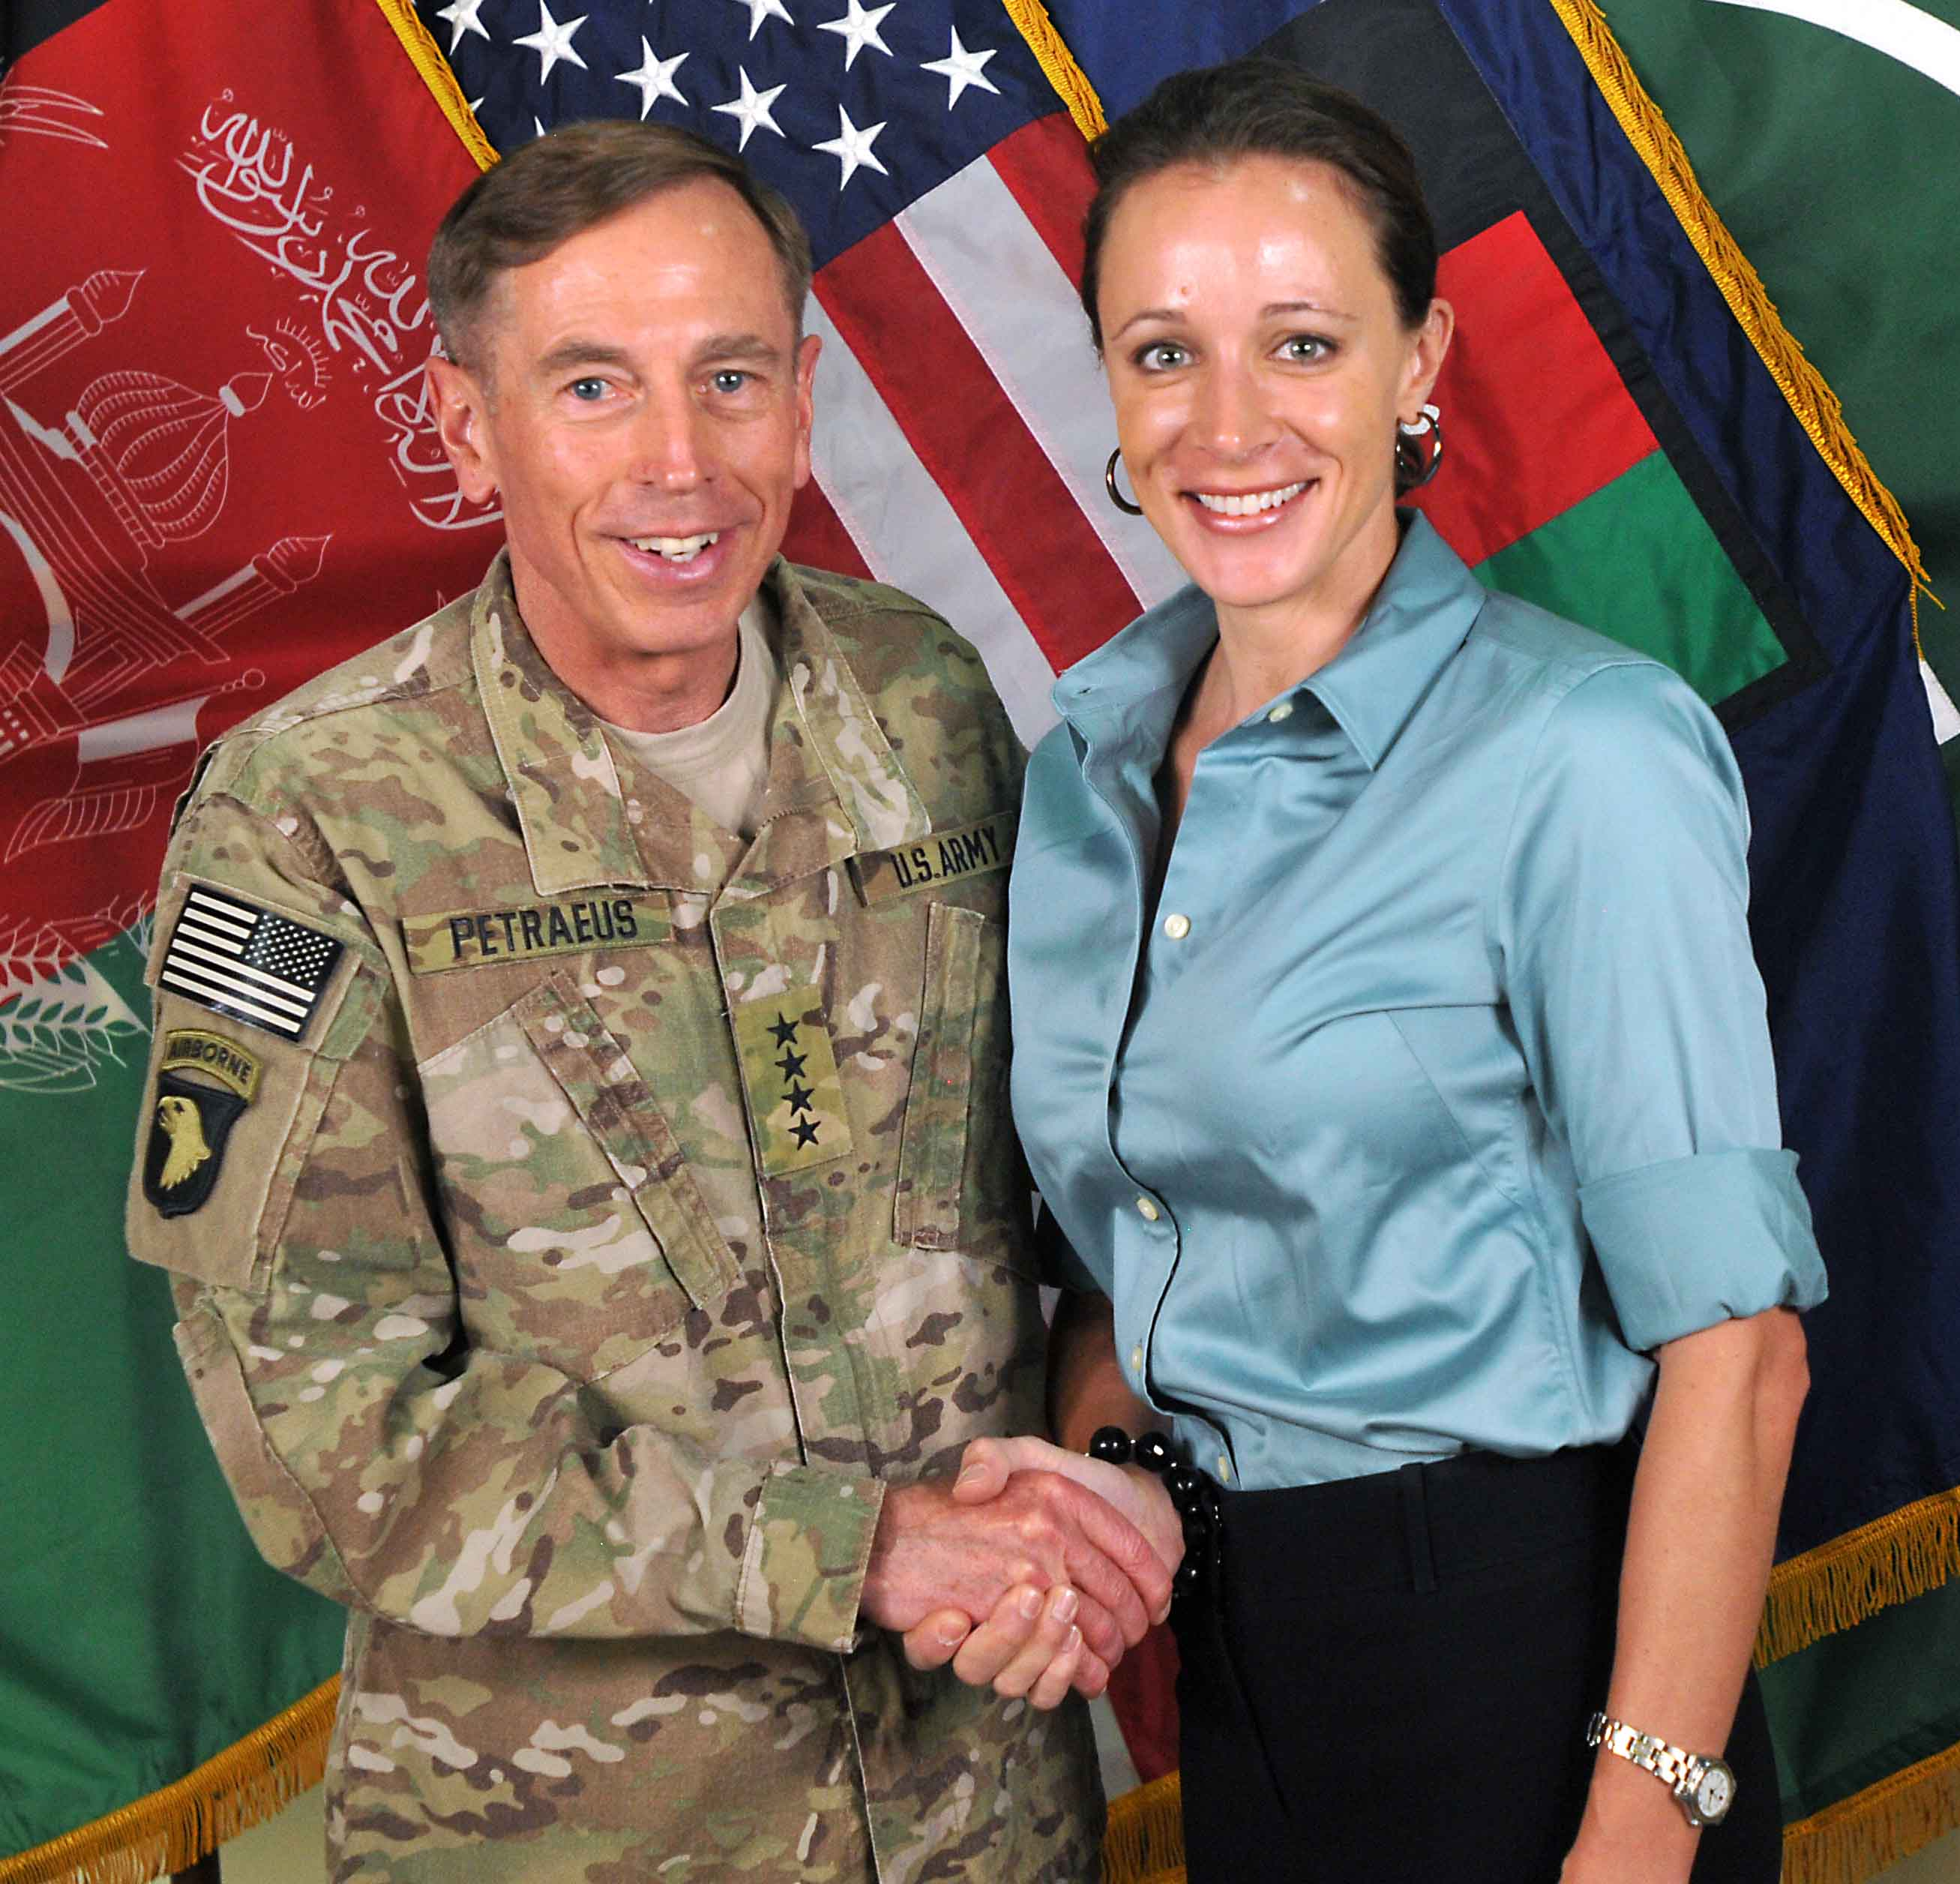 General David Petraeus and author Paula Broadwell